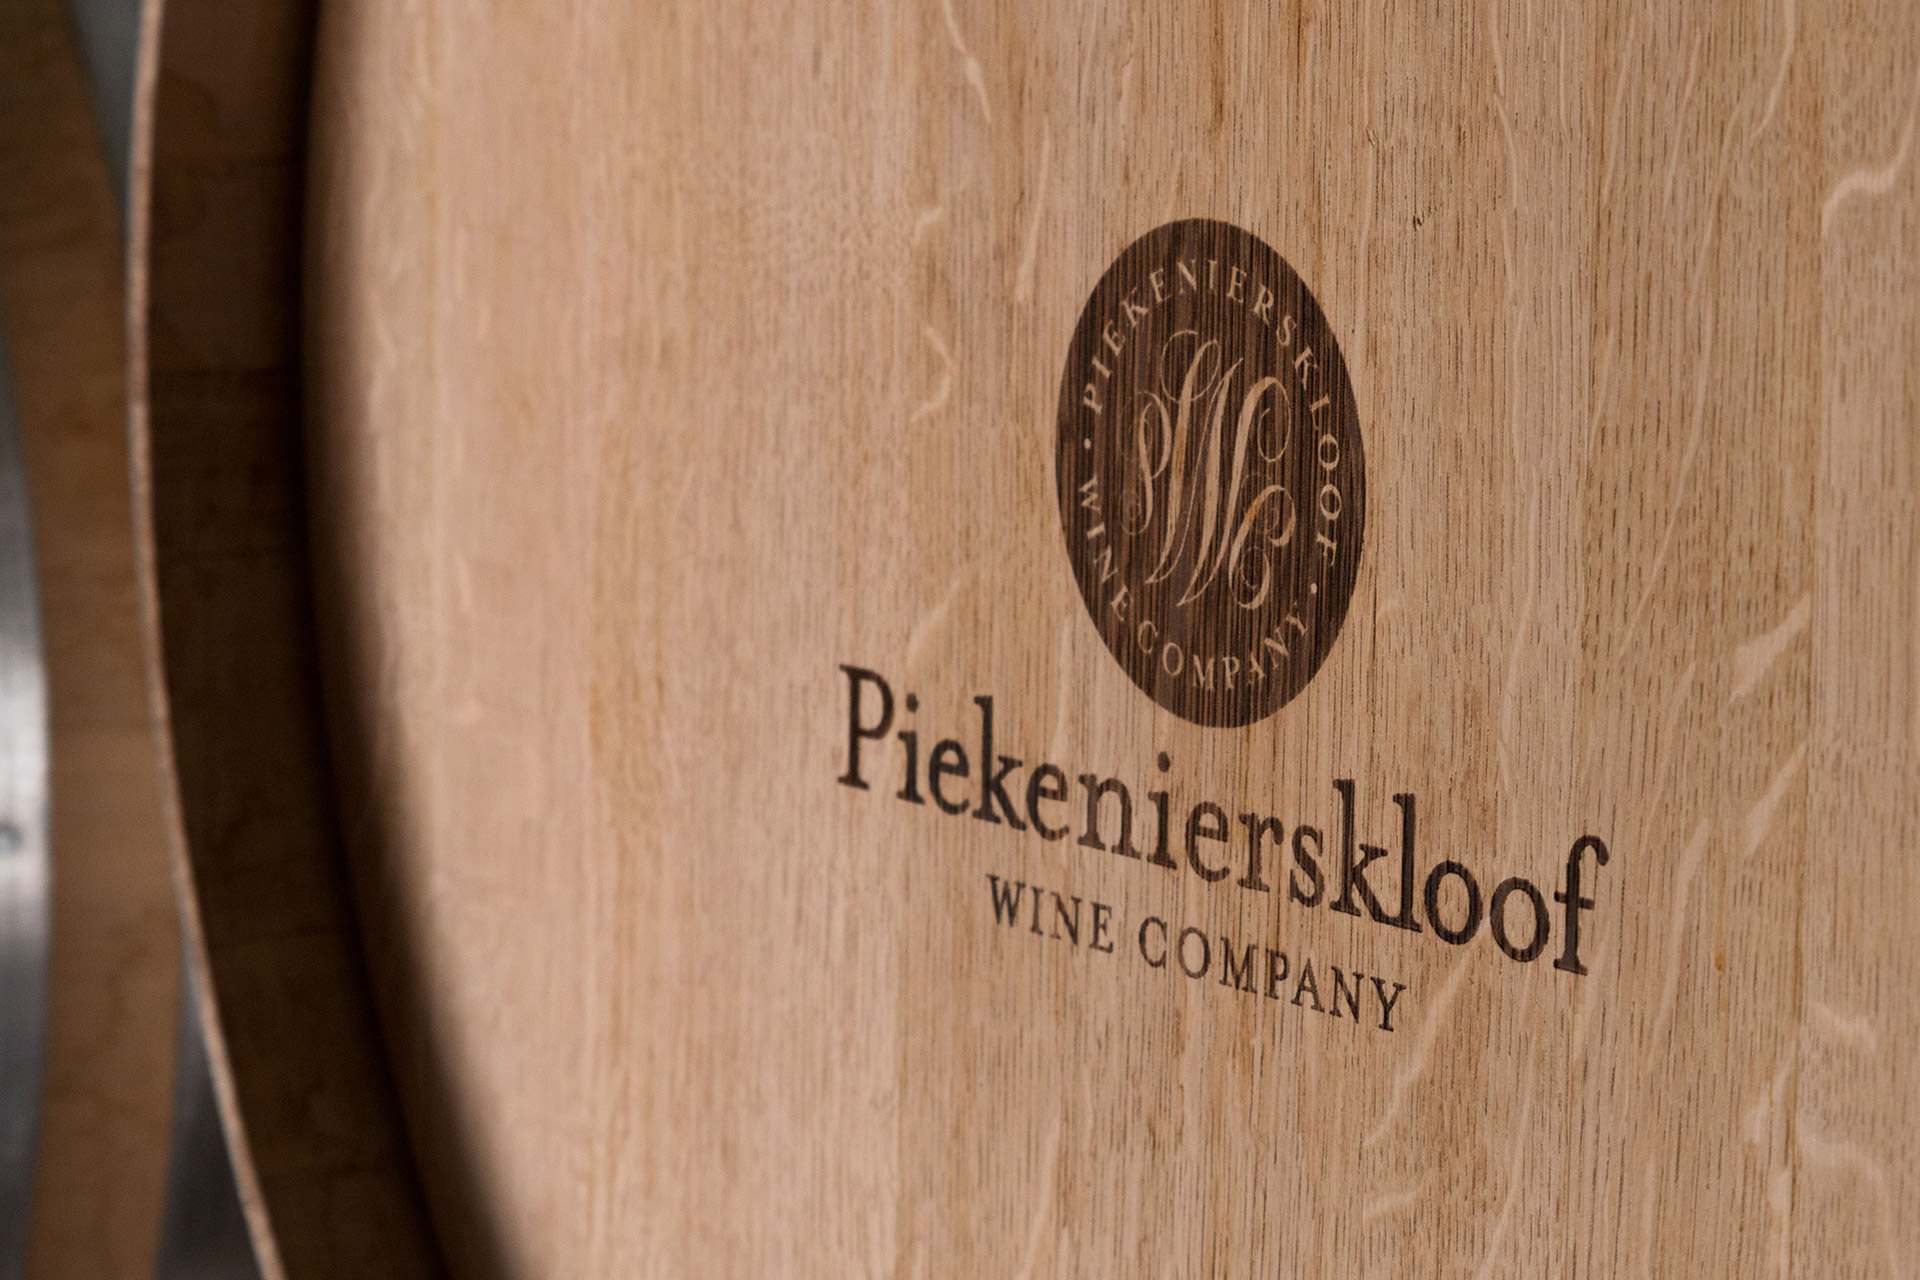 piekenierskloof-wine-co